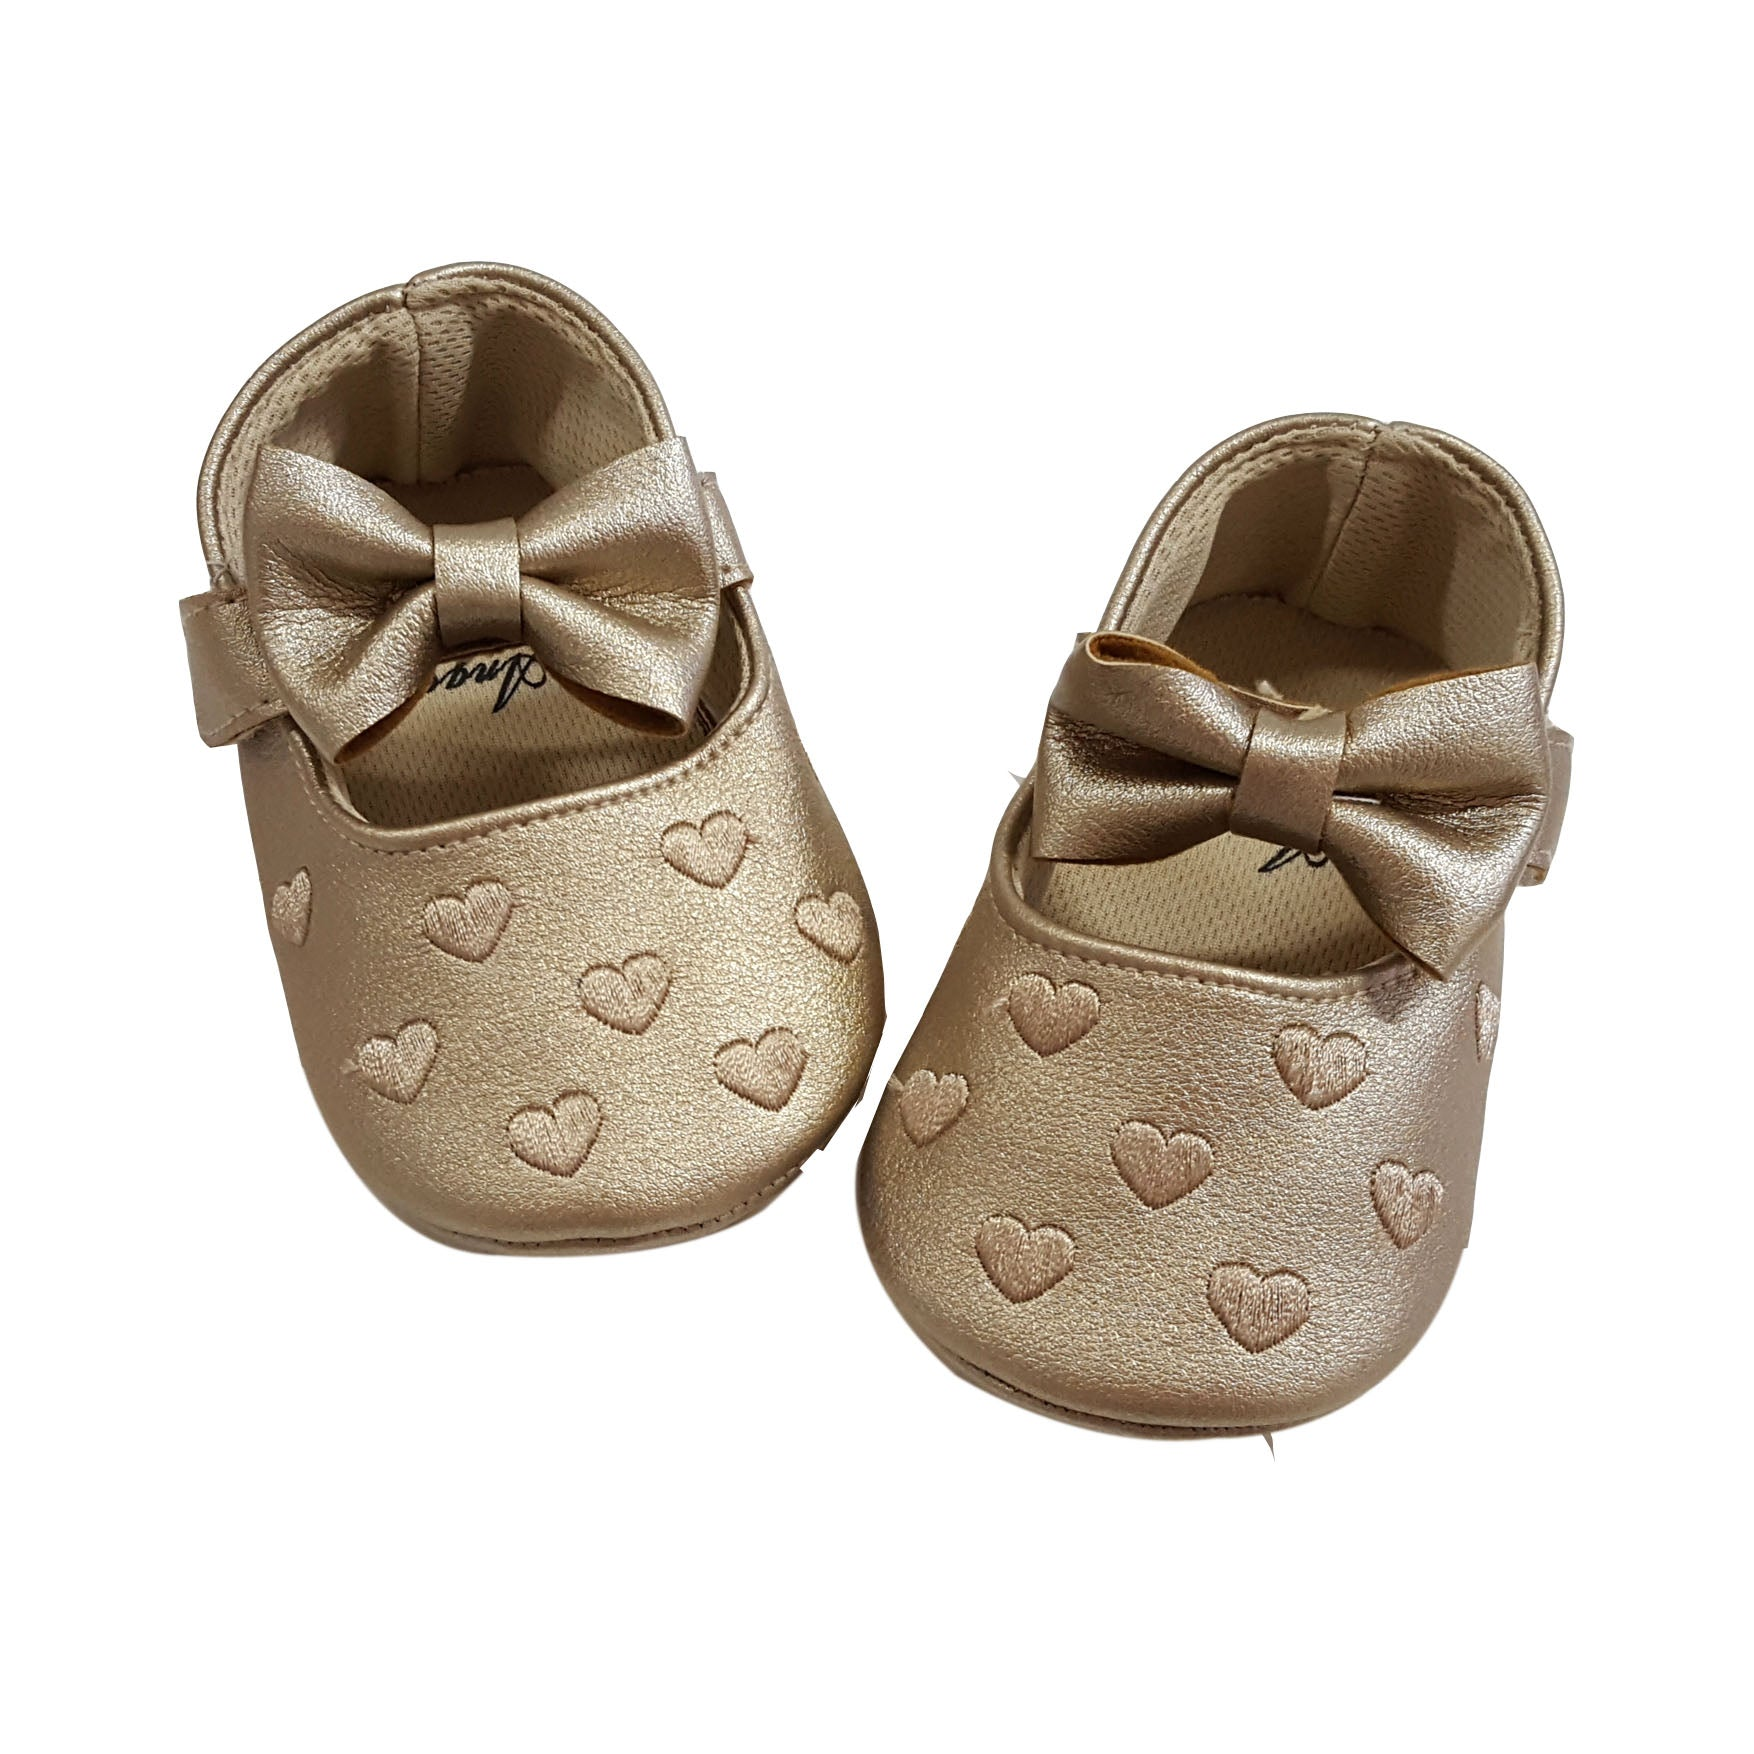 Millie (Pre-Walker Shoes) - B111 Gold Hearts